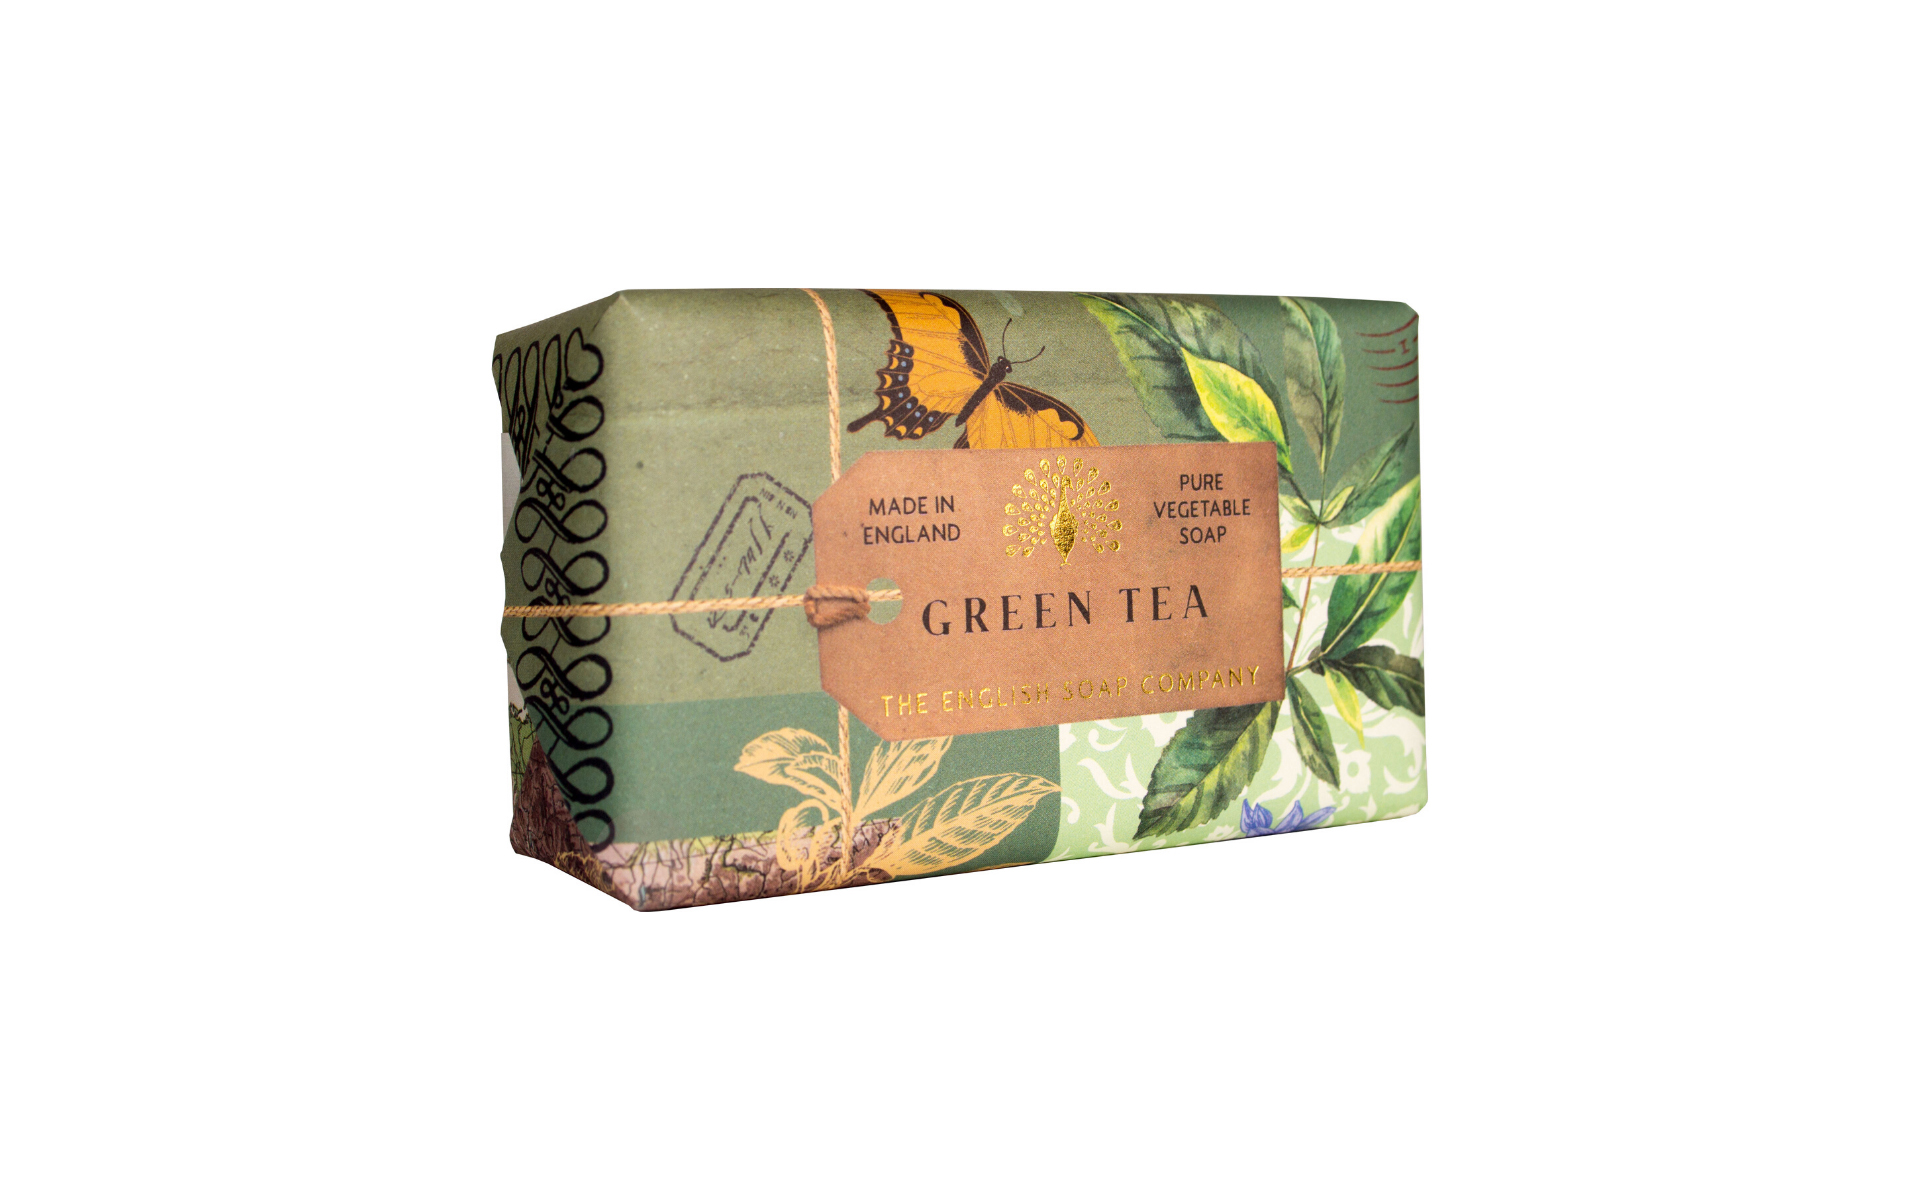 Sabonete 200g Green Tea